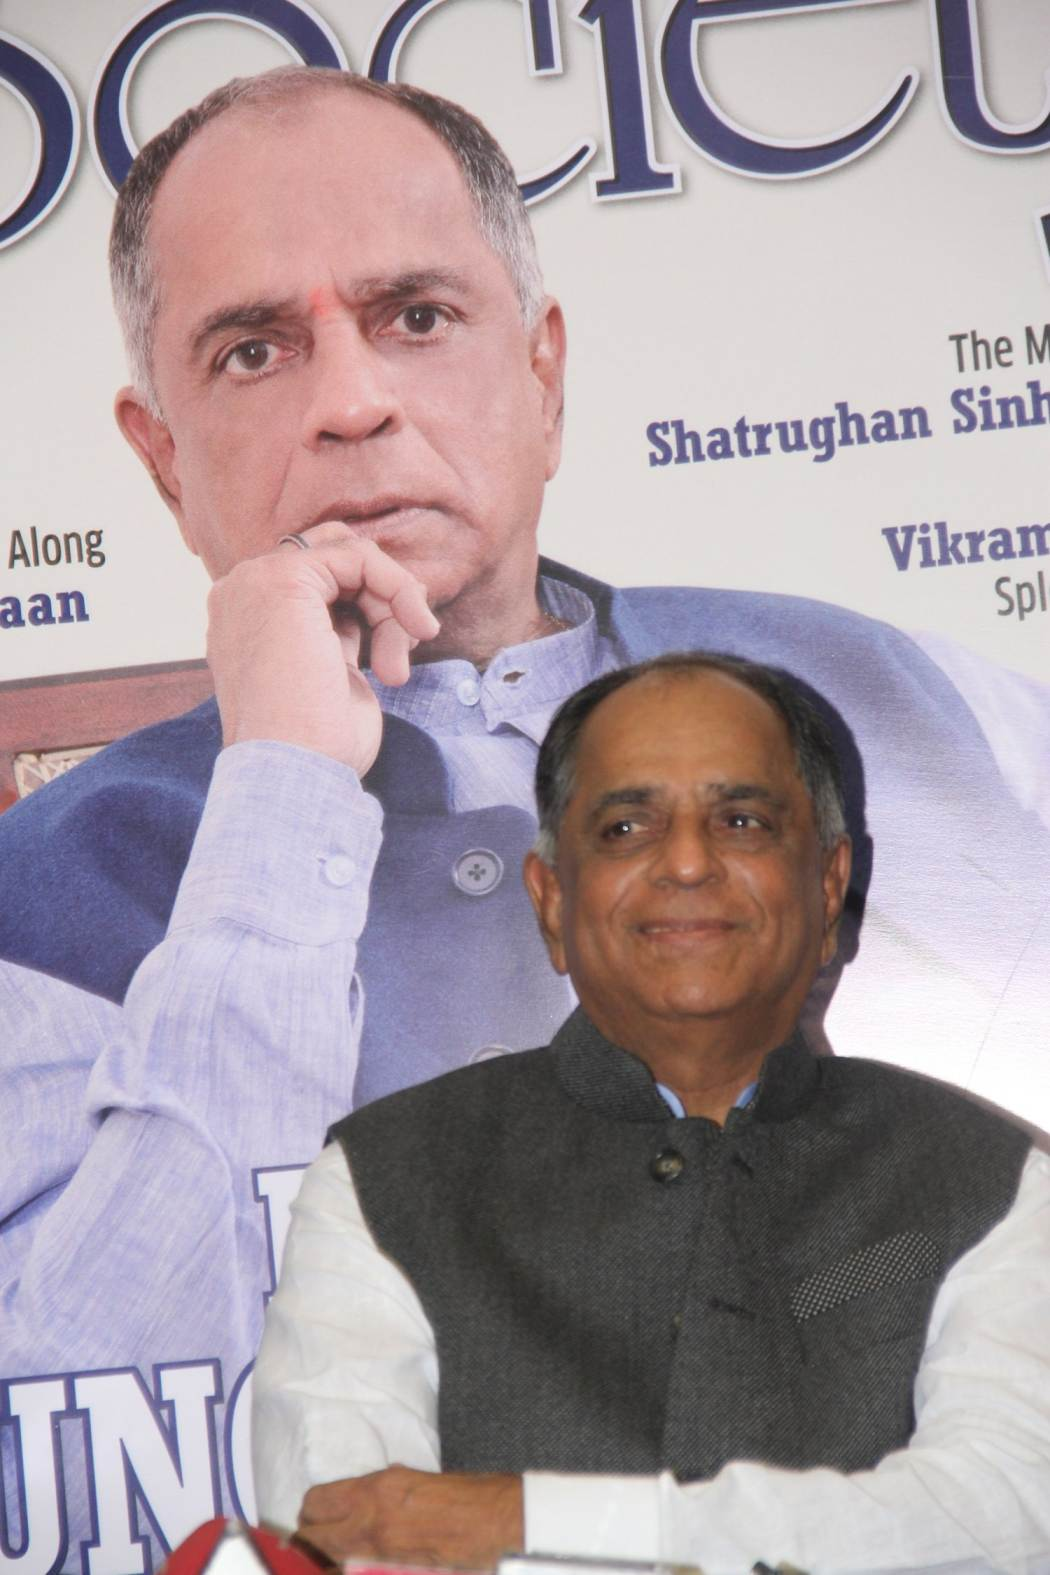 Pahlaj Nihalani Launches Society Magazine Cover in Mumbai